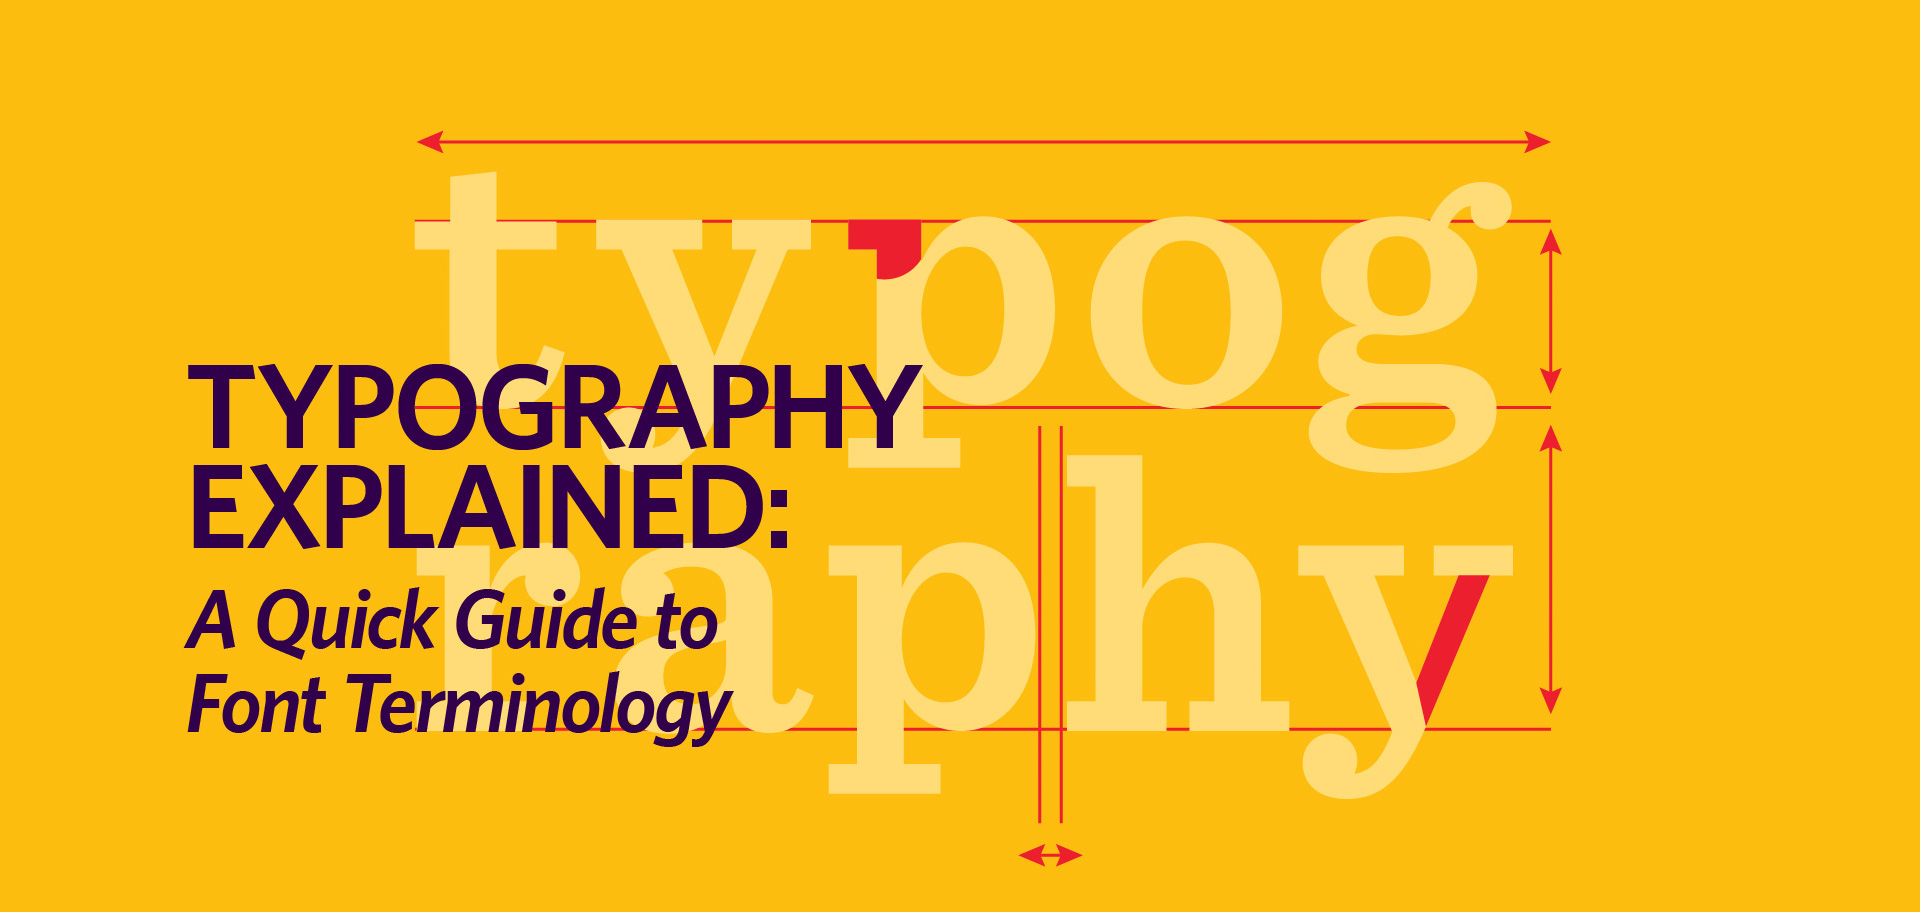 Typography Explained: a quick guide to font terminology by Kettle Fire Creative typography Typography Explained: A Quick Guide to Font Terminology font terms fi